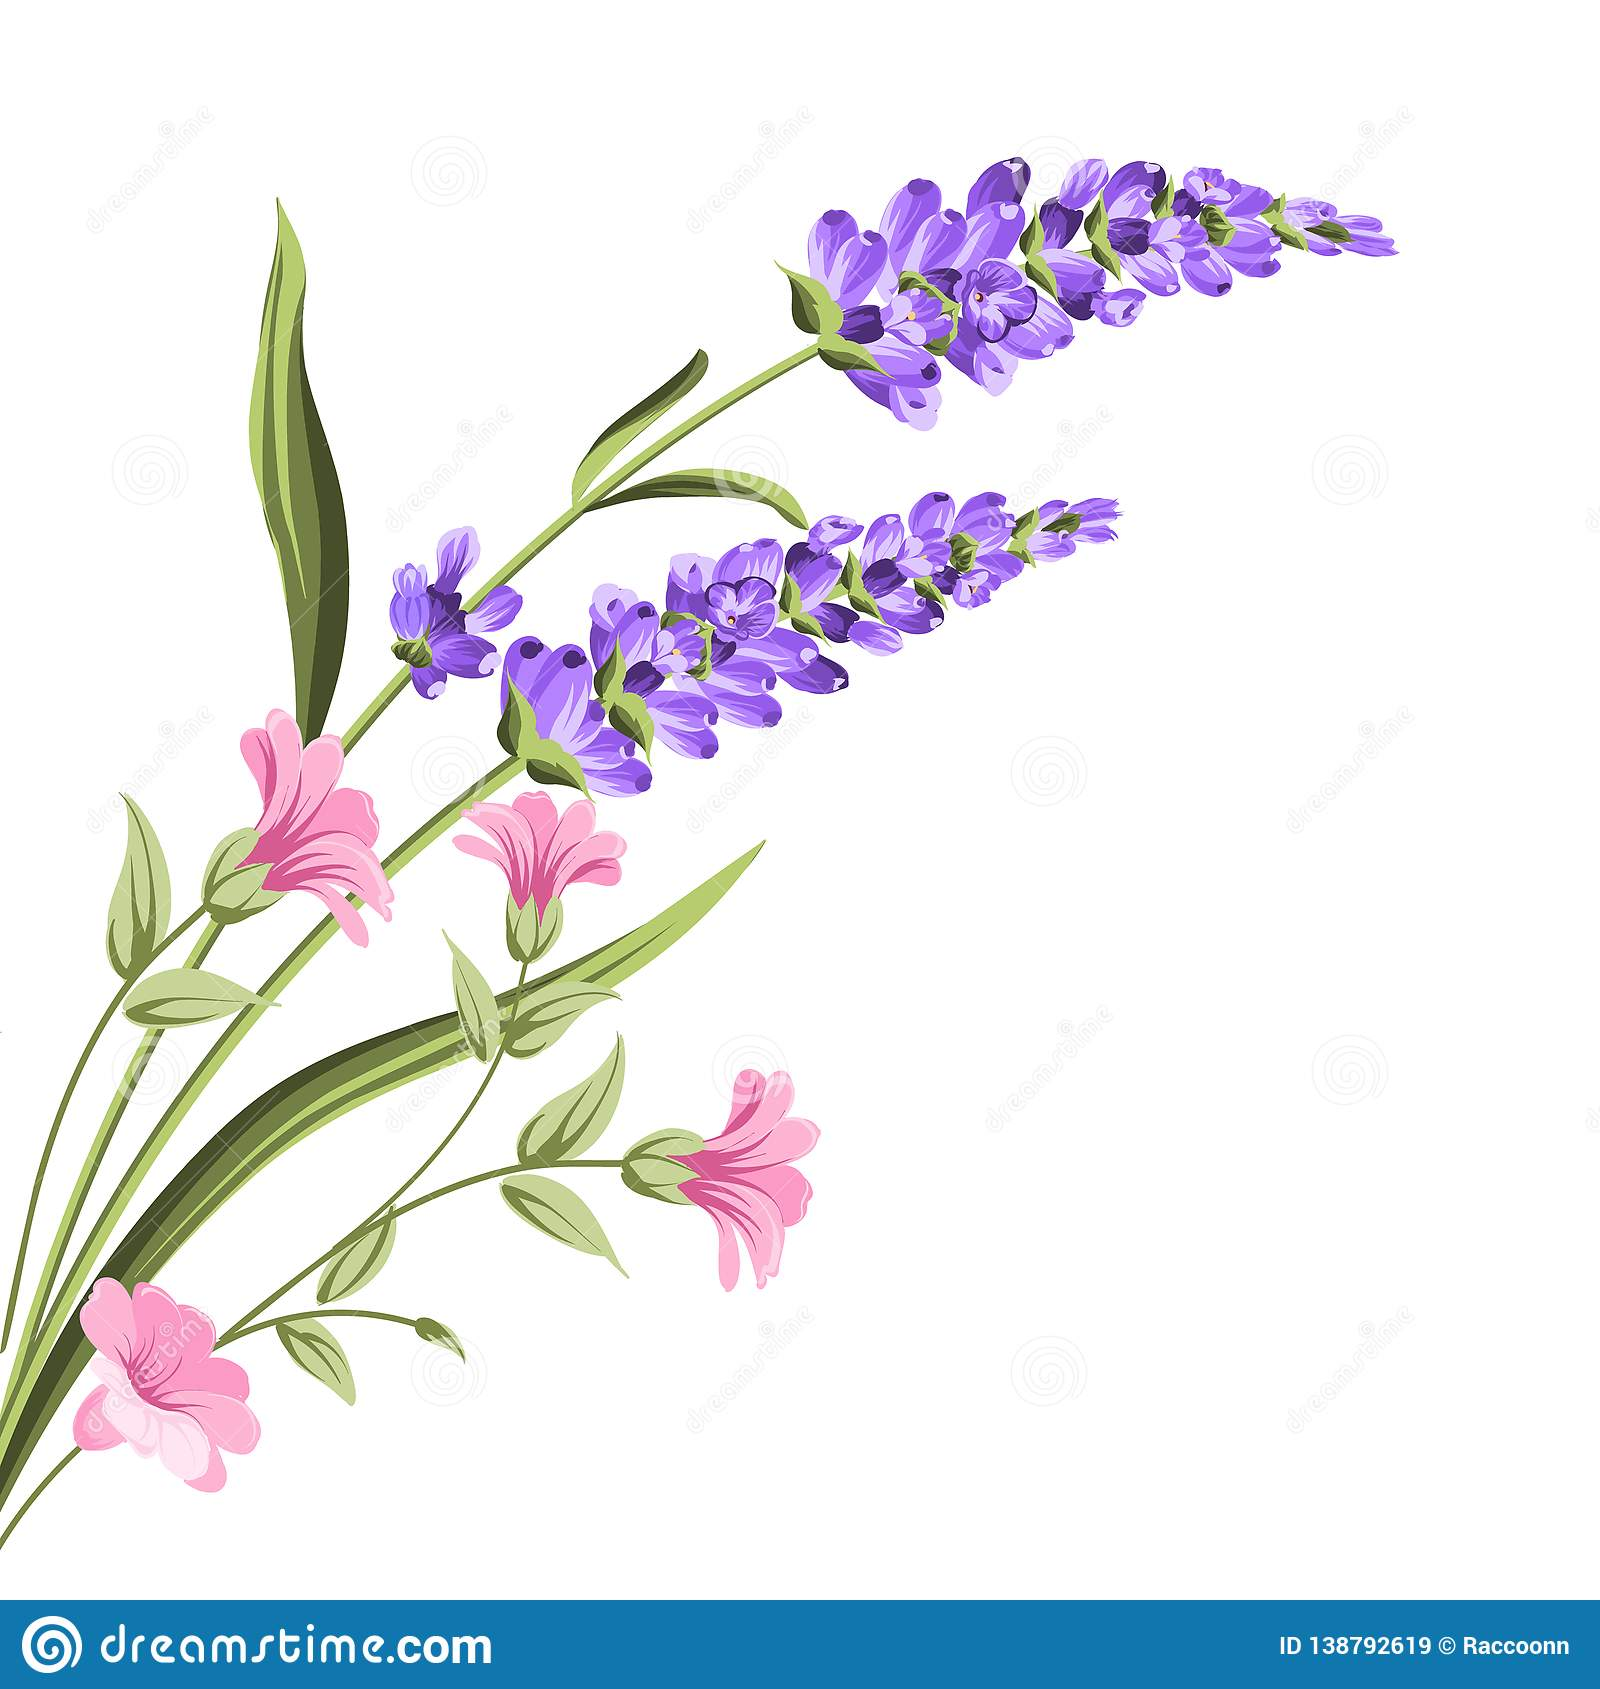 Elegant Card With Lavender Flowers Stock Vector Illustration Of French Greeting 138792619